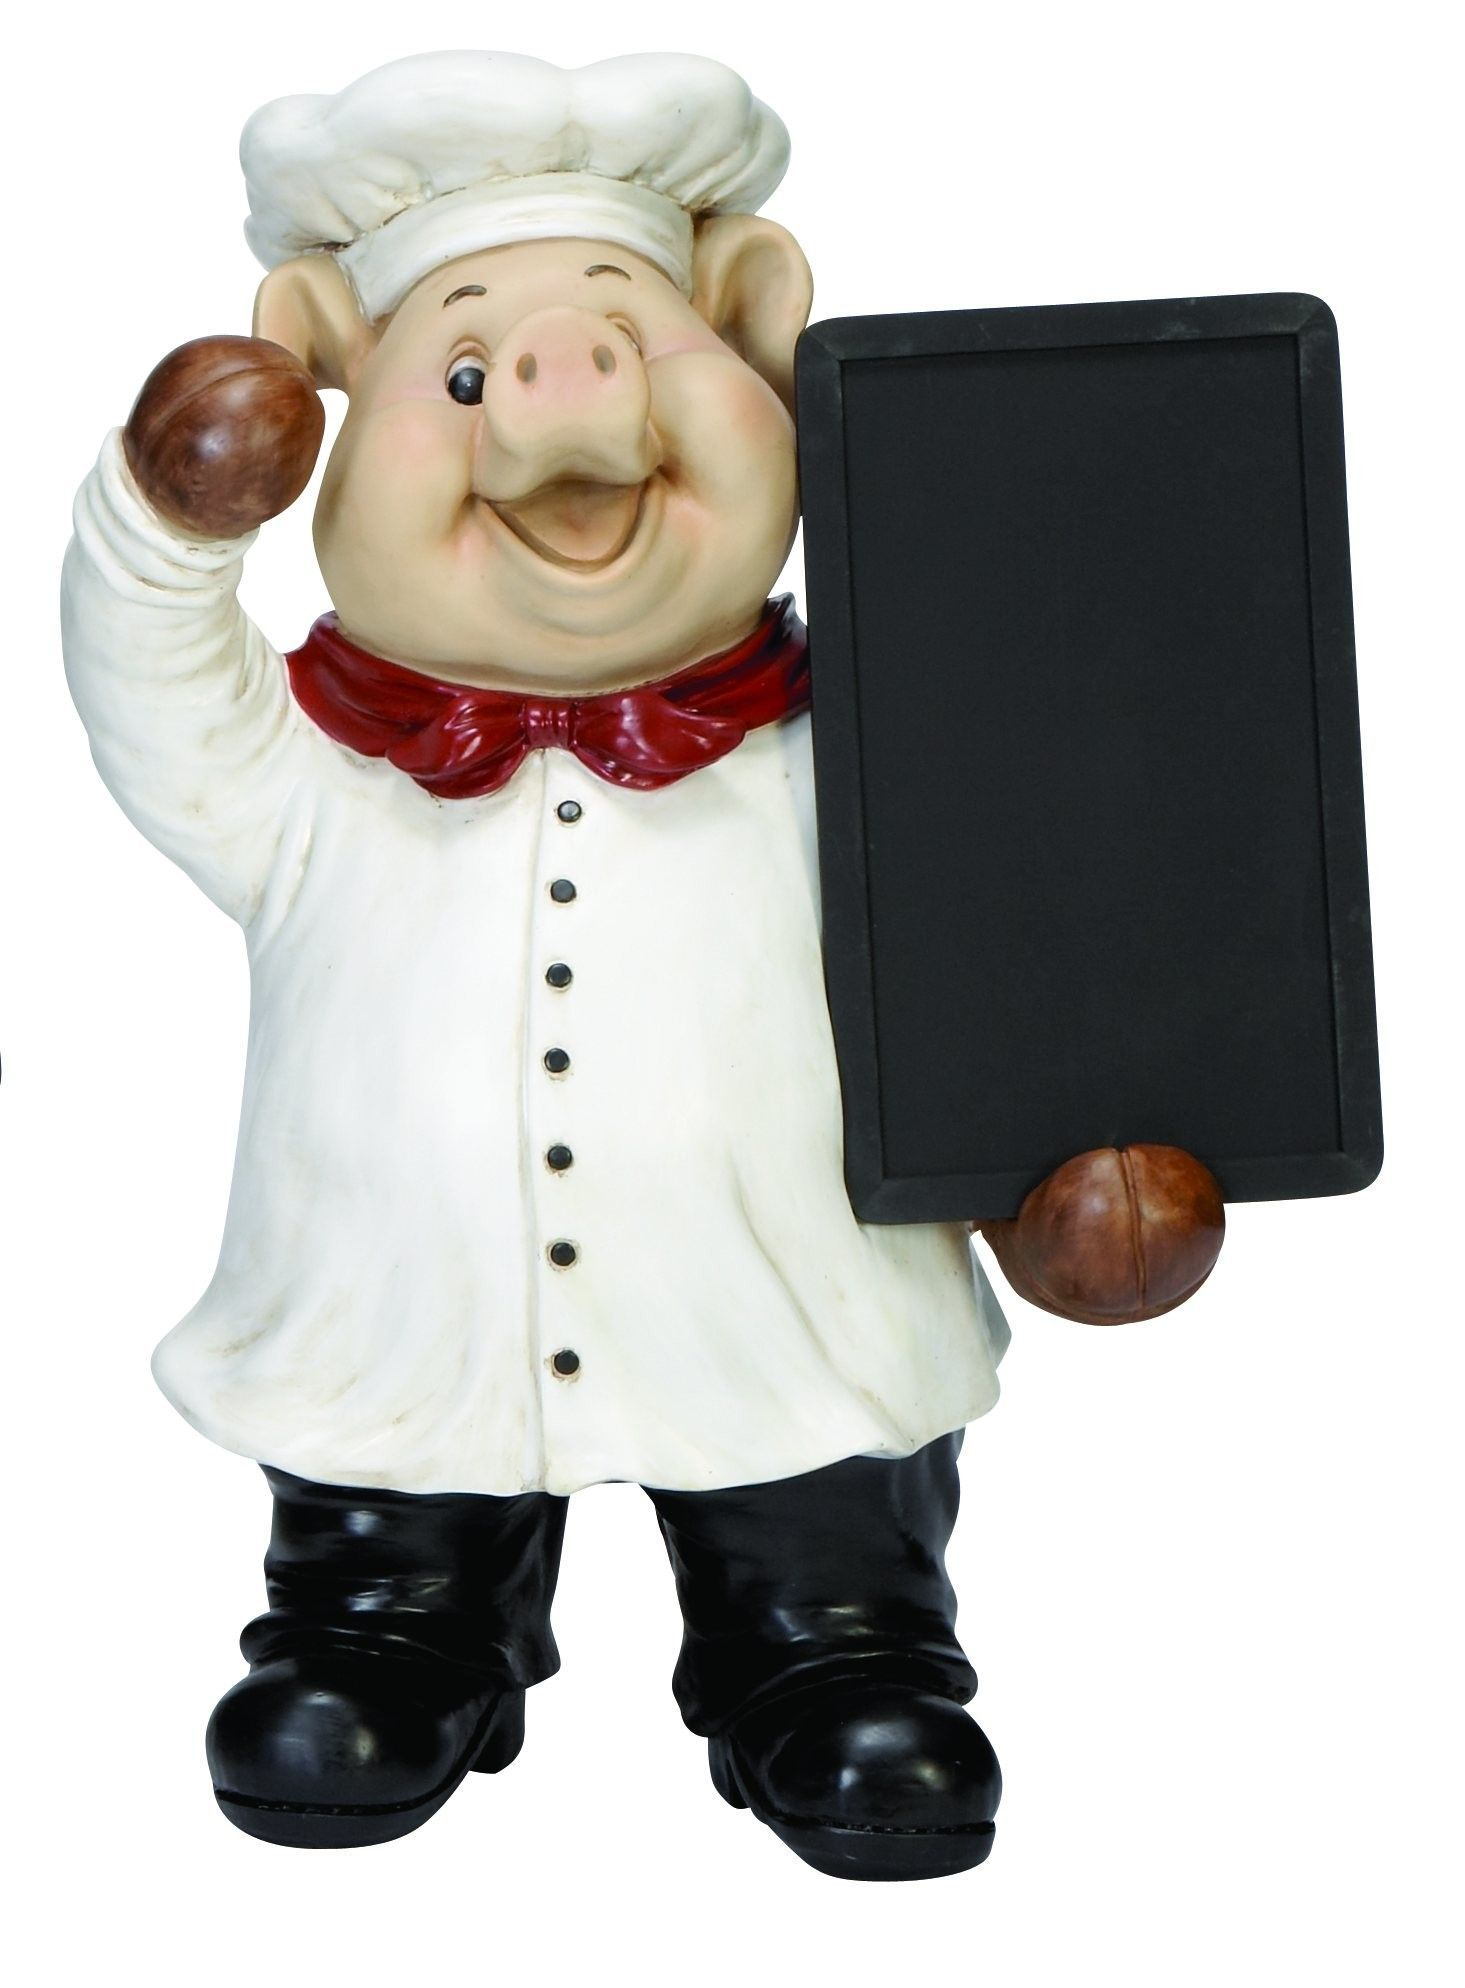 Pig Chef Figurine Chalkboard Products Pinterest